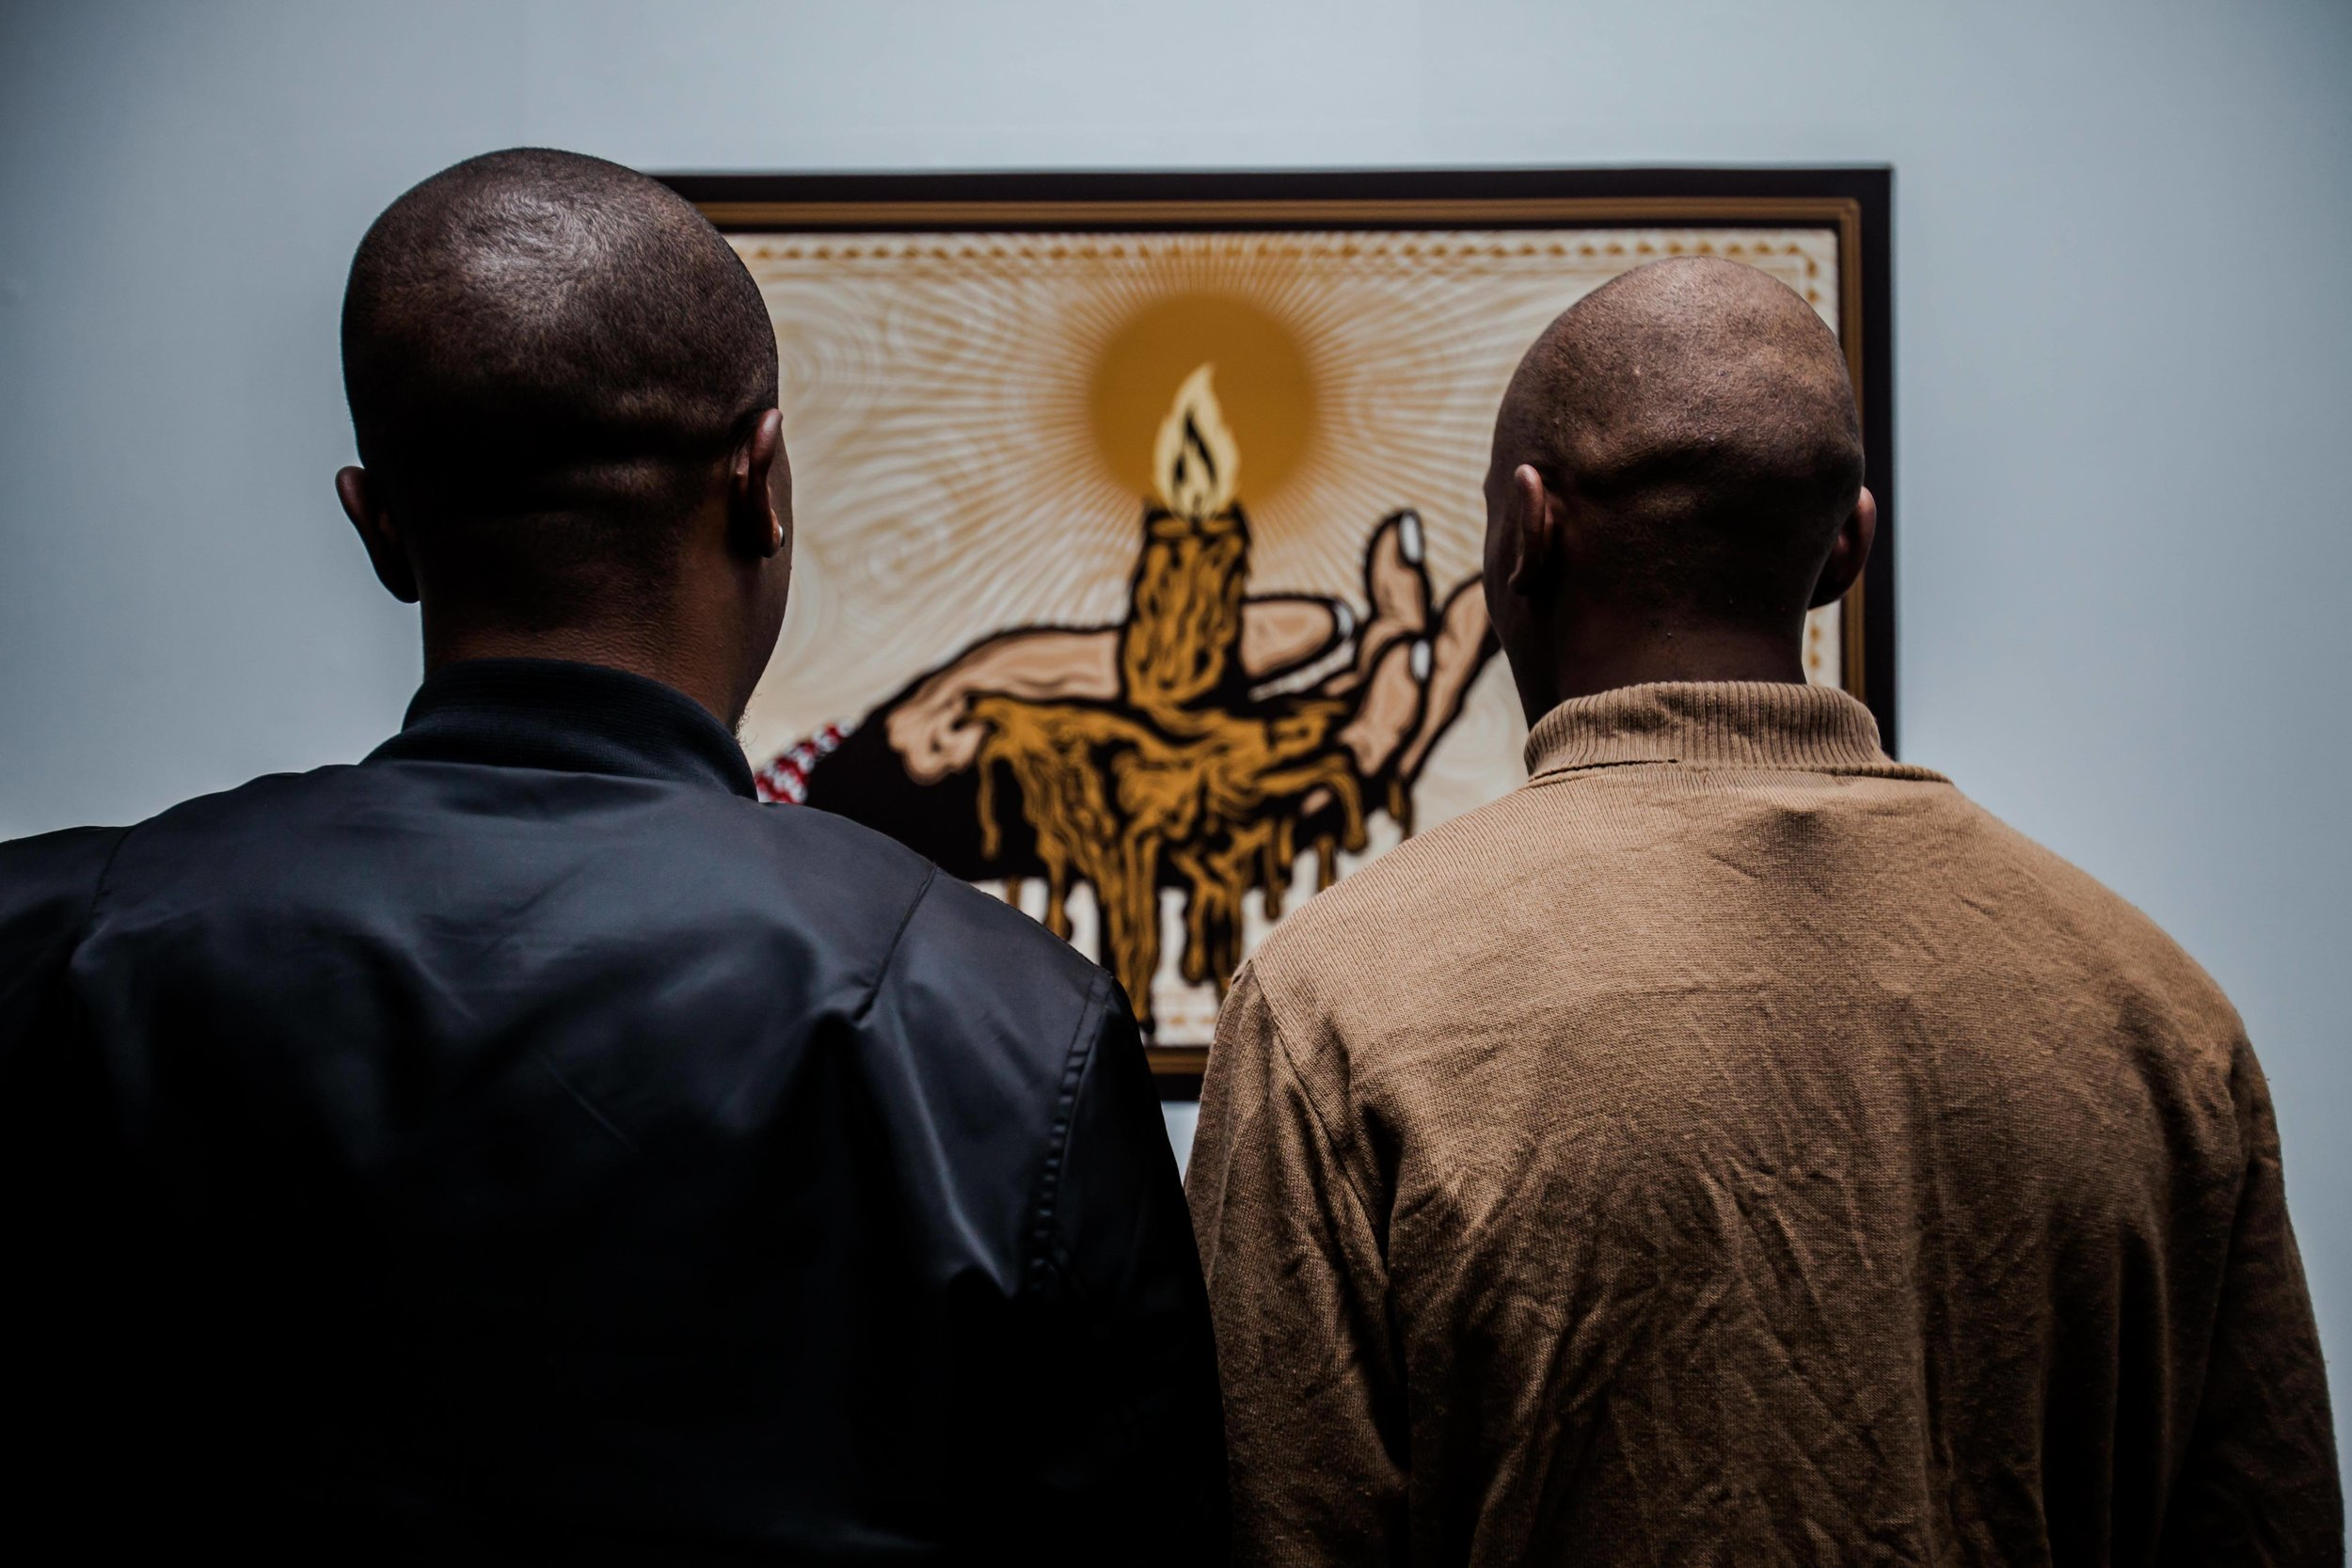 Modise Sepend_Traces Of Culture (68 of 485).jpg